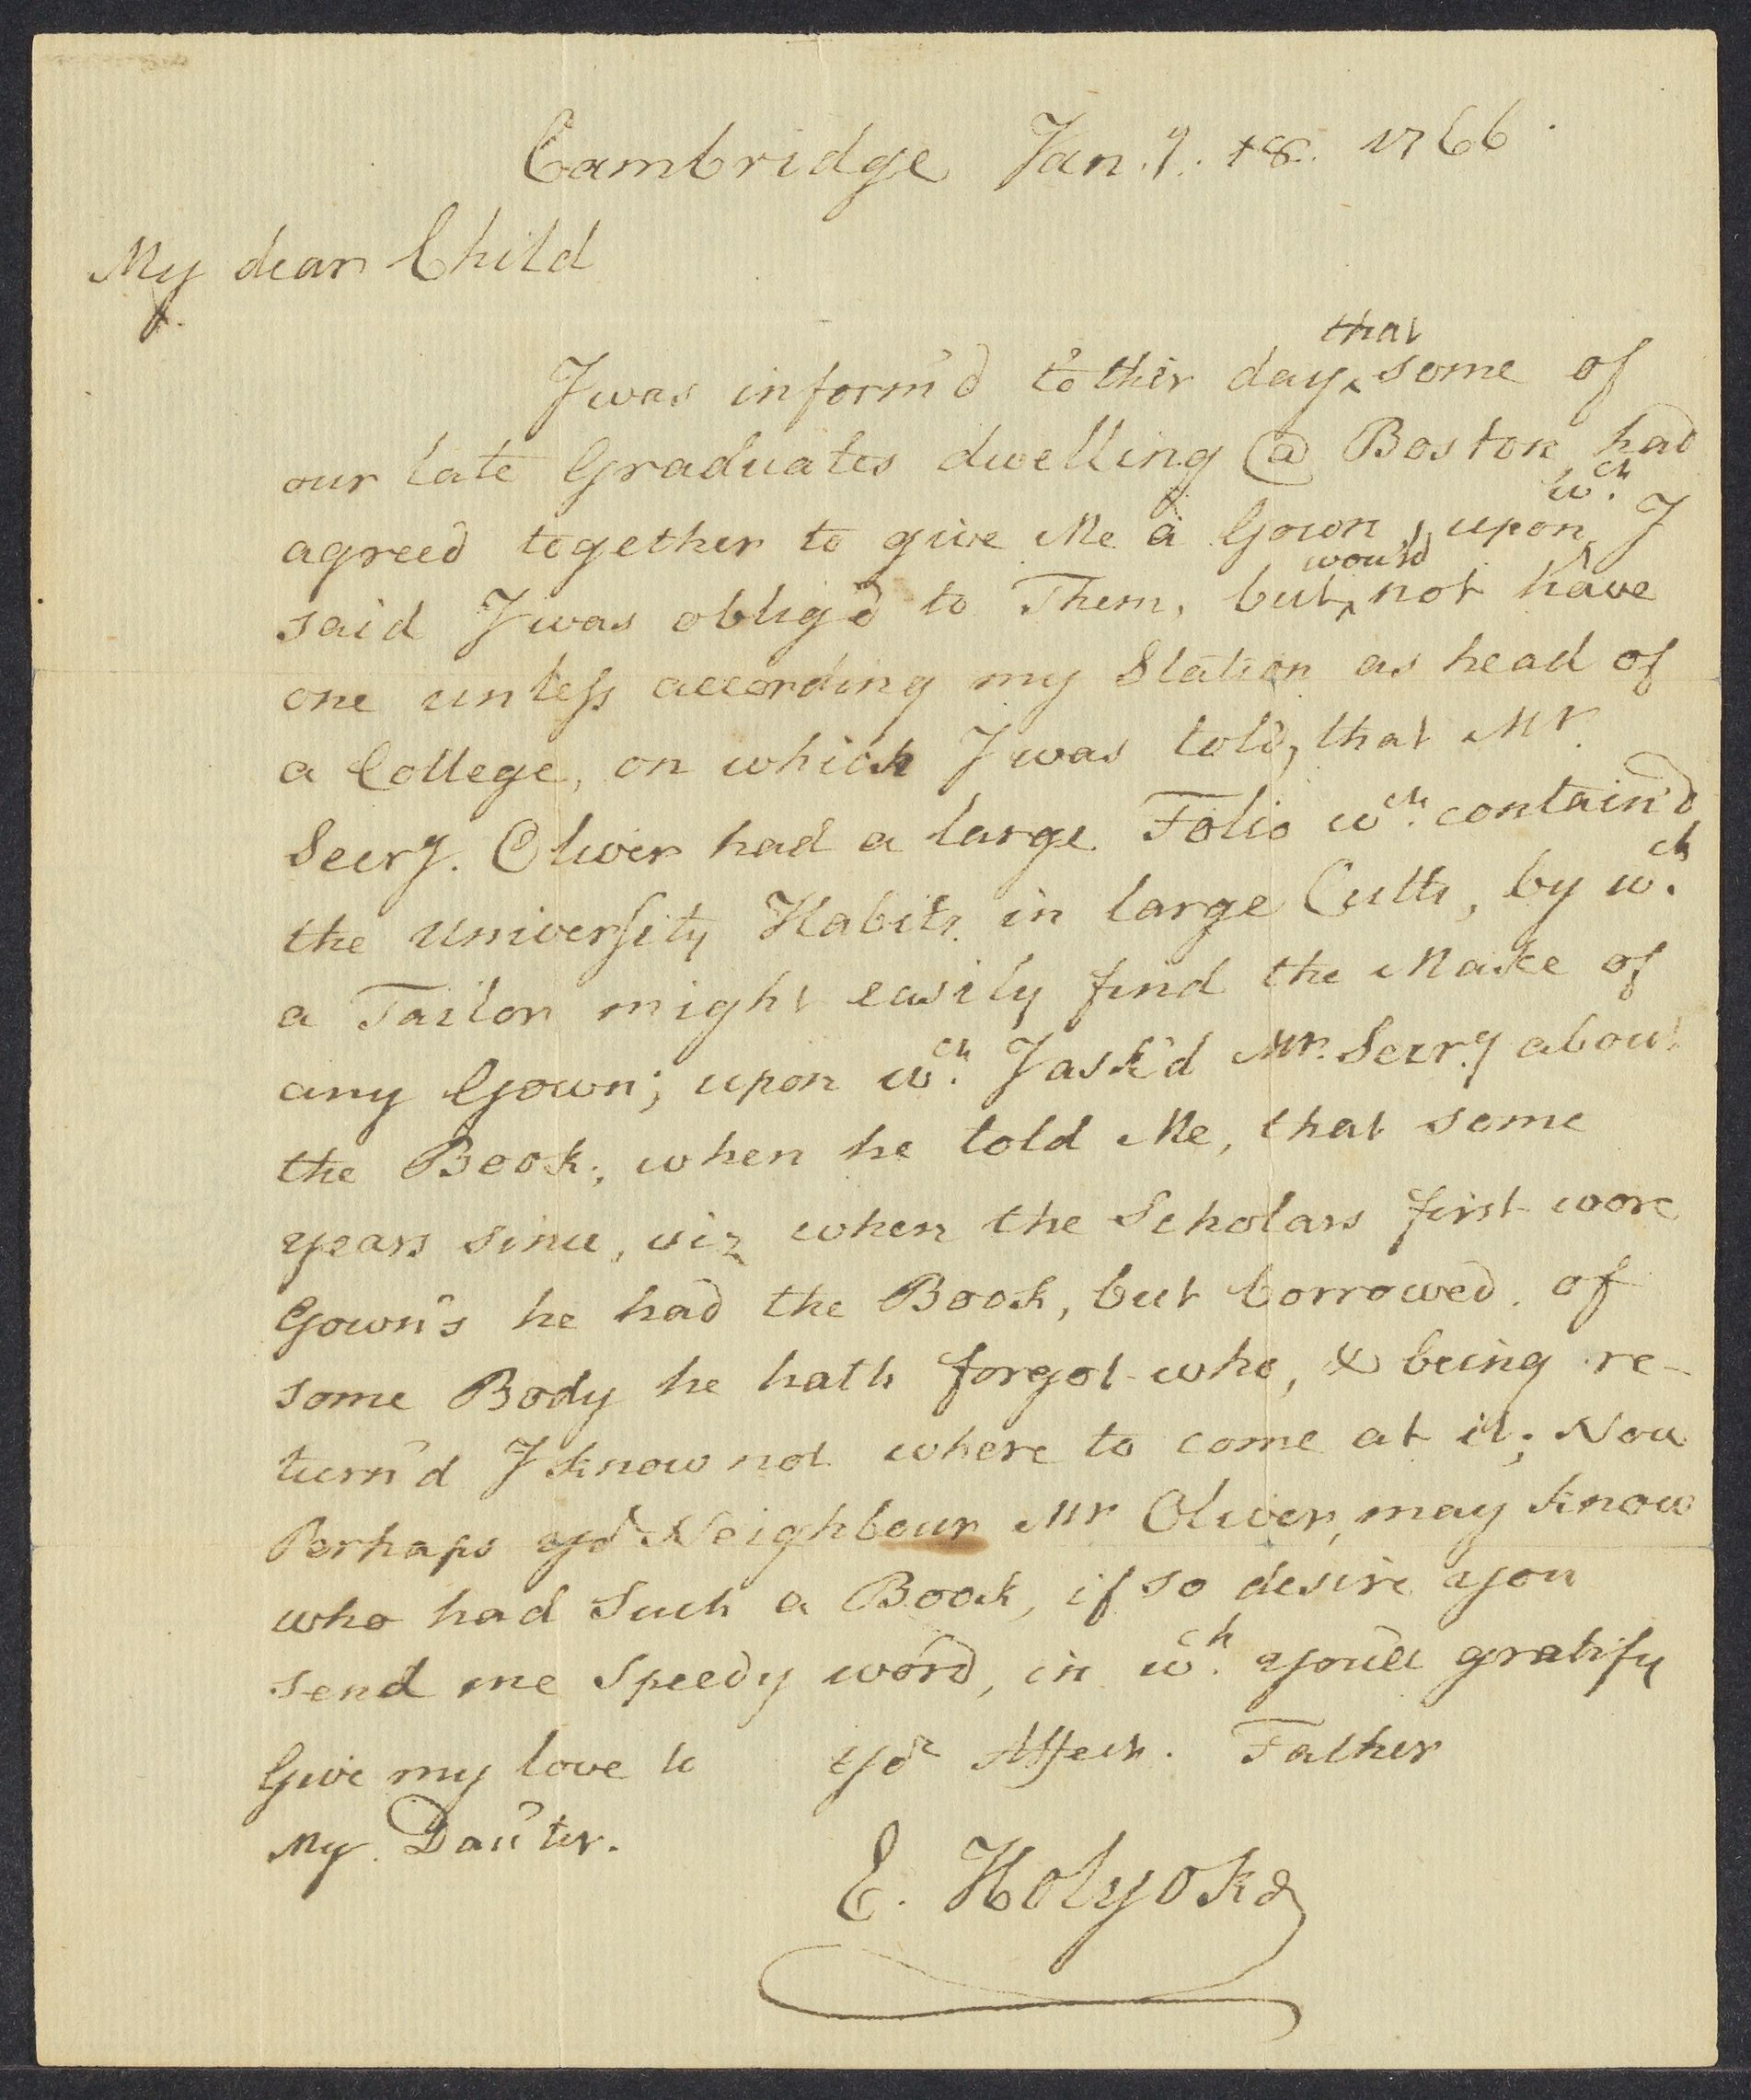 Letter from Edward Holyoke to his child, 1766, January 18